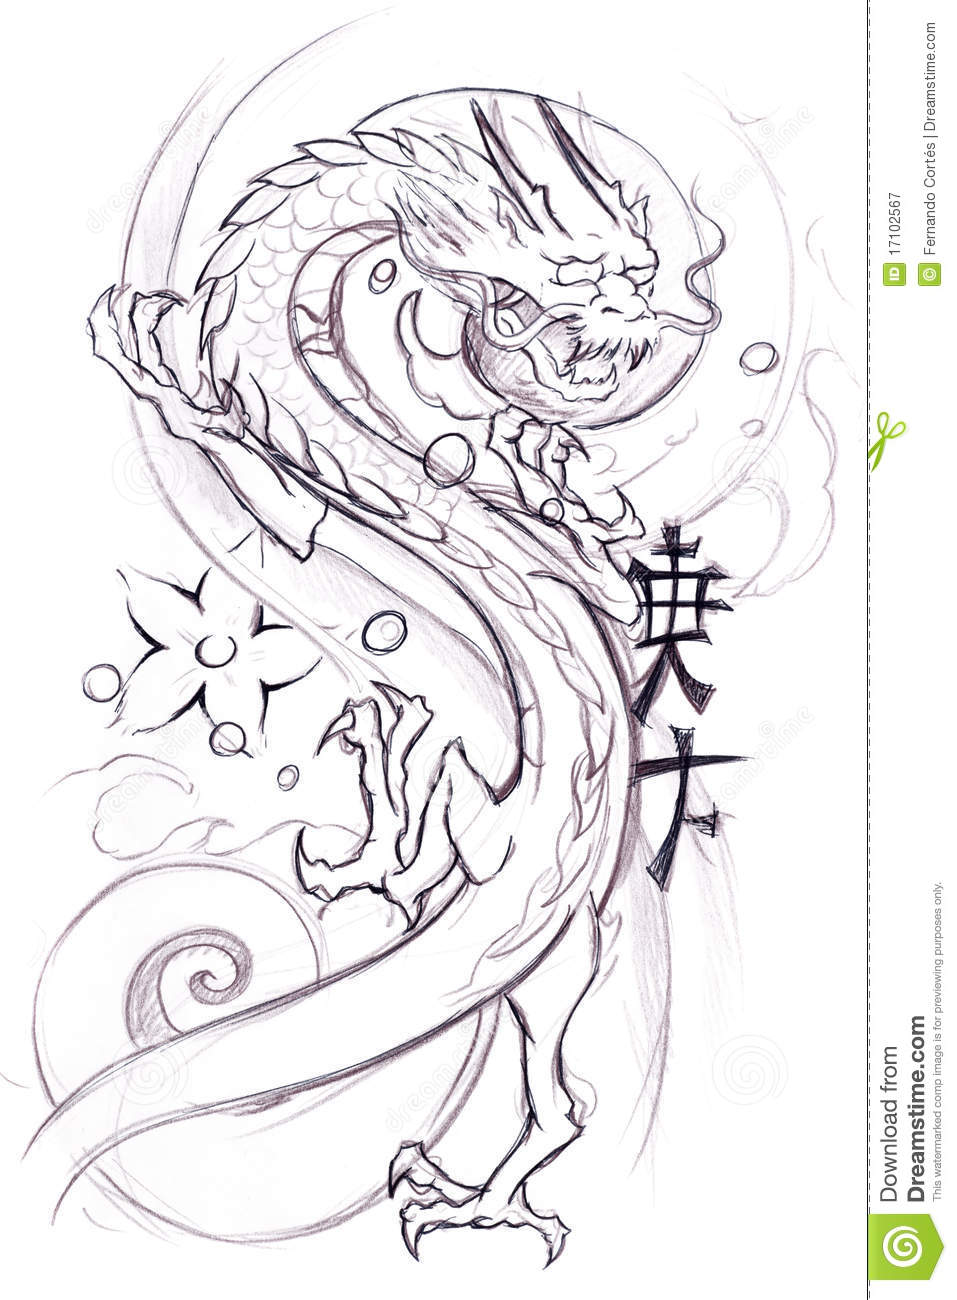 How To Draw A Japanese Dragon : japanese, dragon, Tattoo, Sketch, Japanese, Dragon, Stock, Illustration, Elements,, Ornament:, 17102567